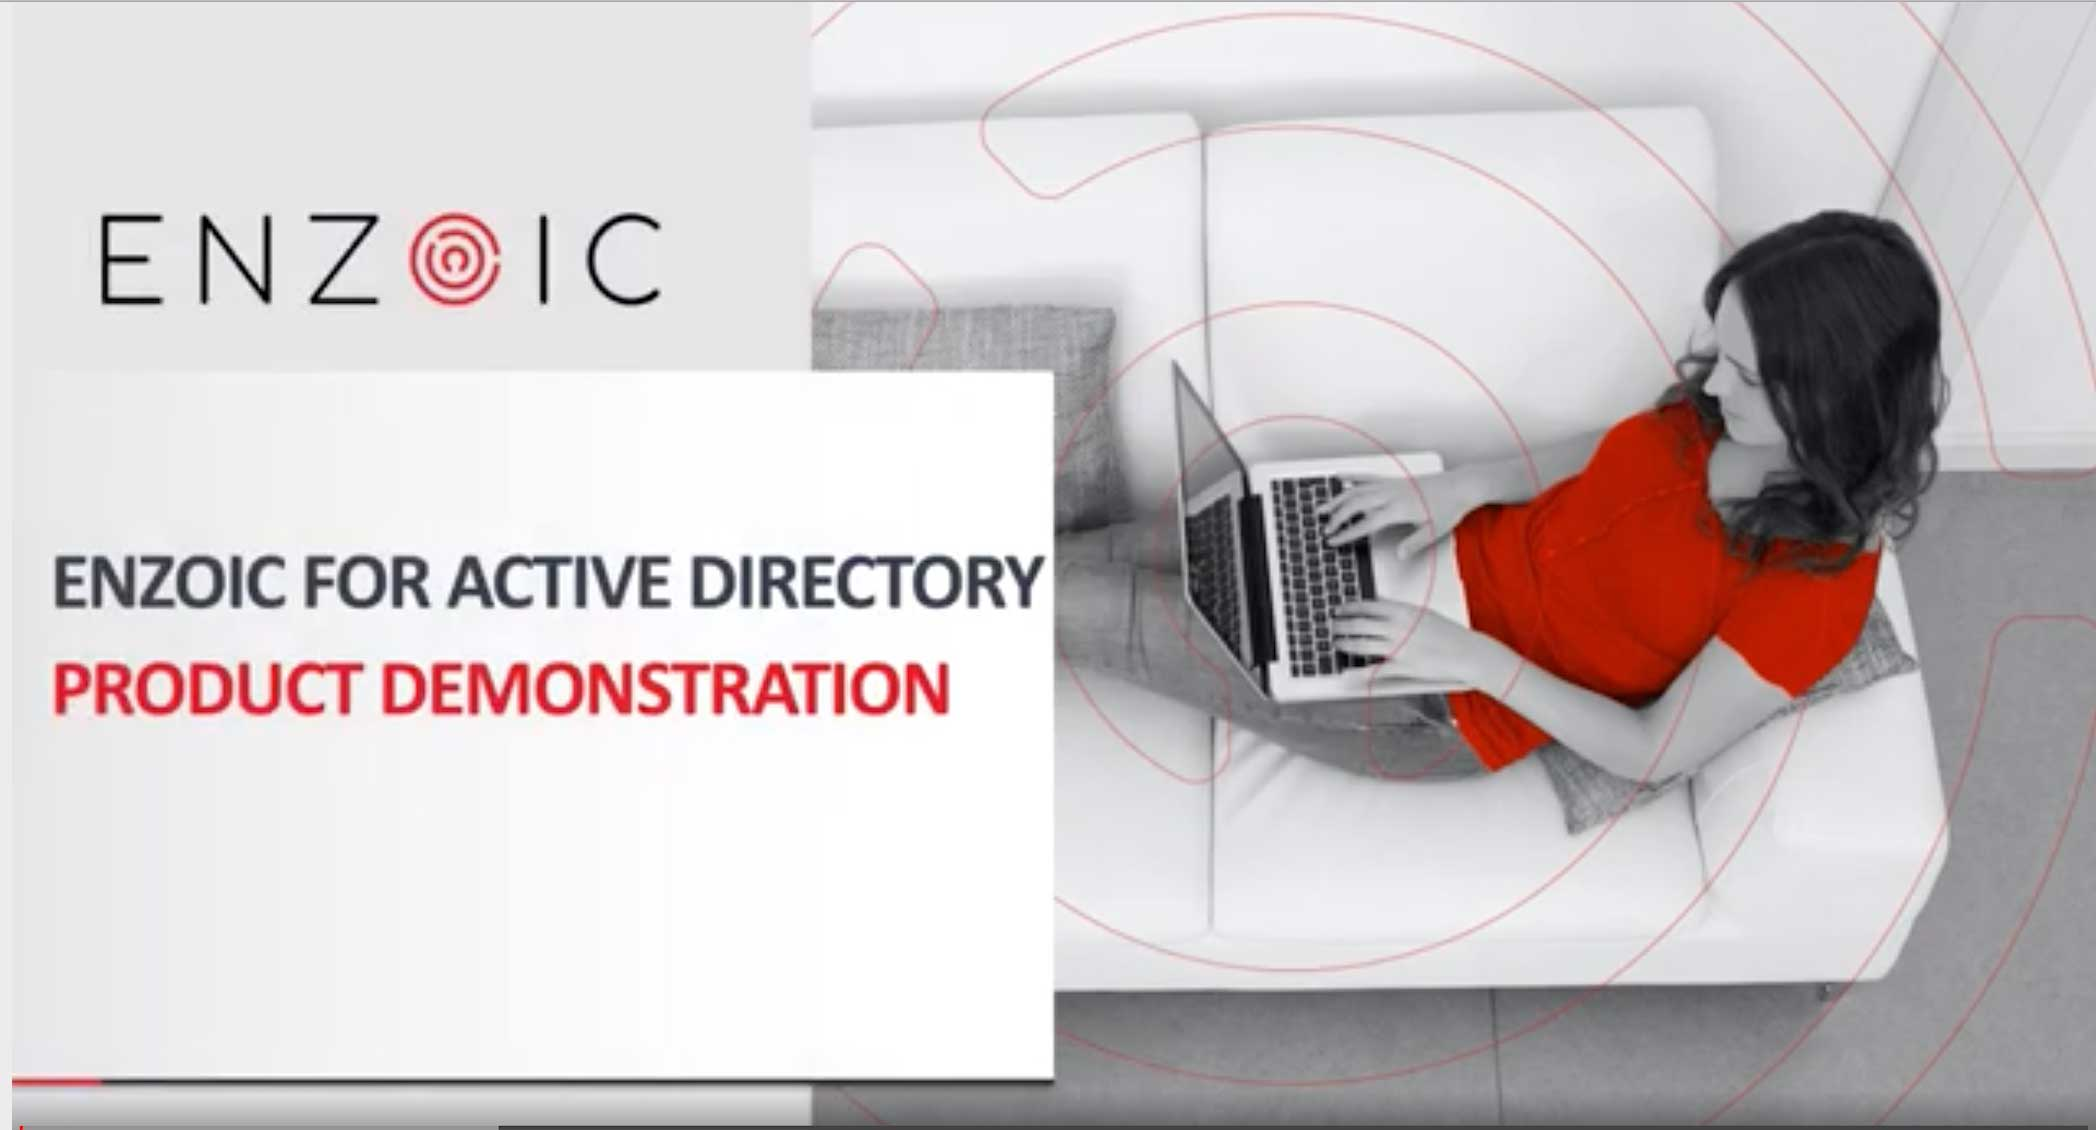 Enzoic for Active Directory Product Demo